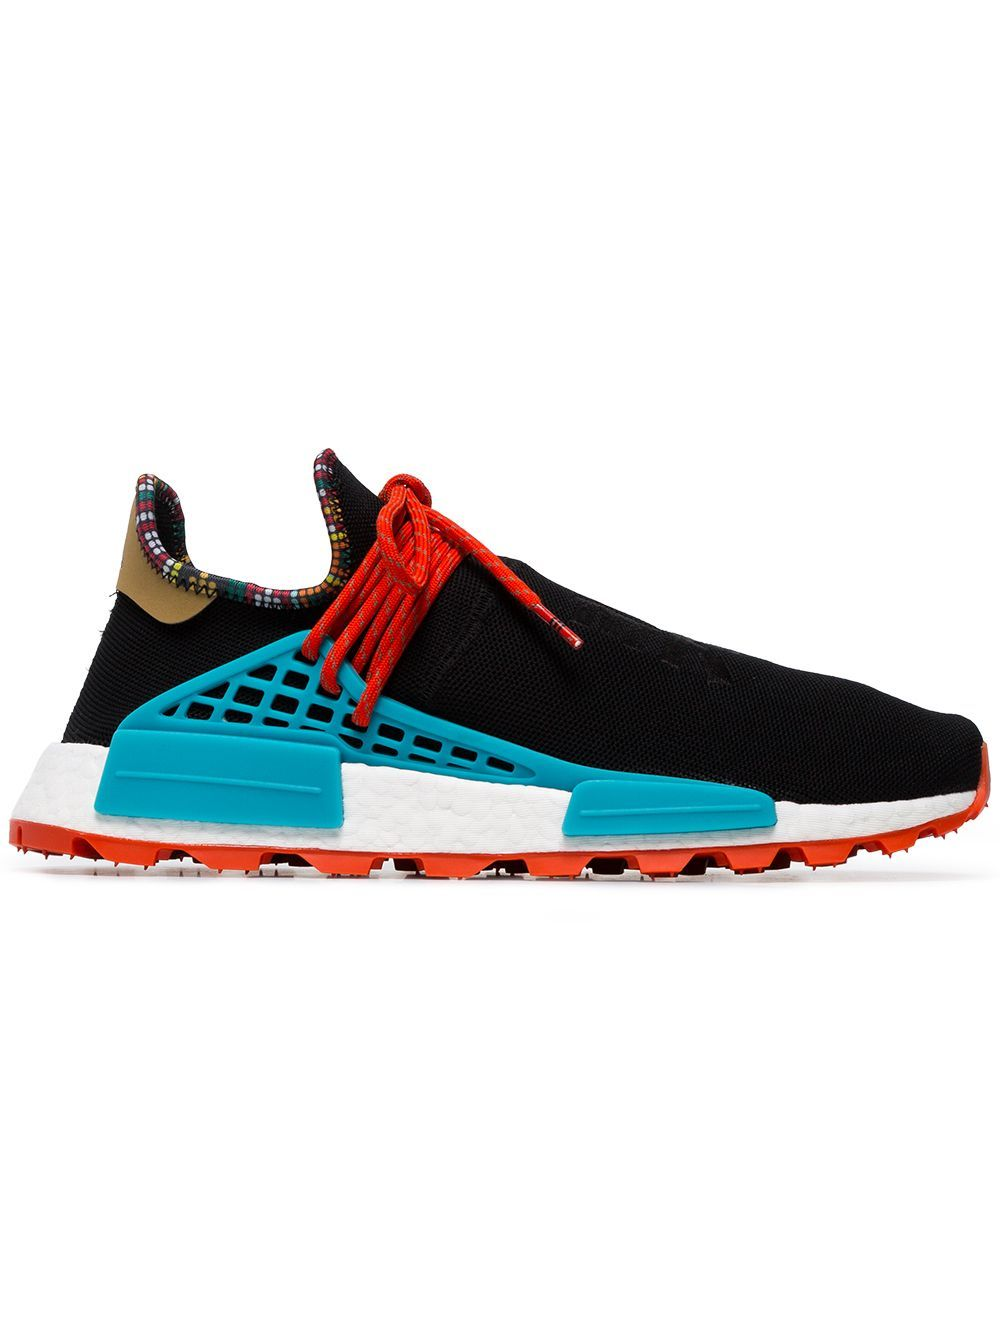 708cd0c2f5b3 ADIDAS ORIGINALS ADIDAS X PHARRELL WILLIAMS BLACK HUMAN BODY NMD SNEAKERS -  黑色.  adidasoriginals  shoes